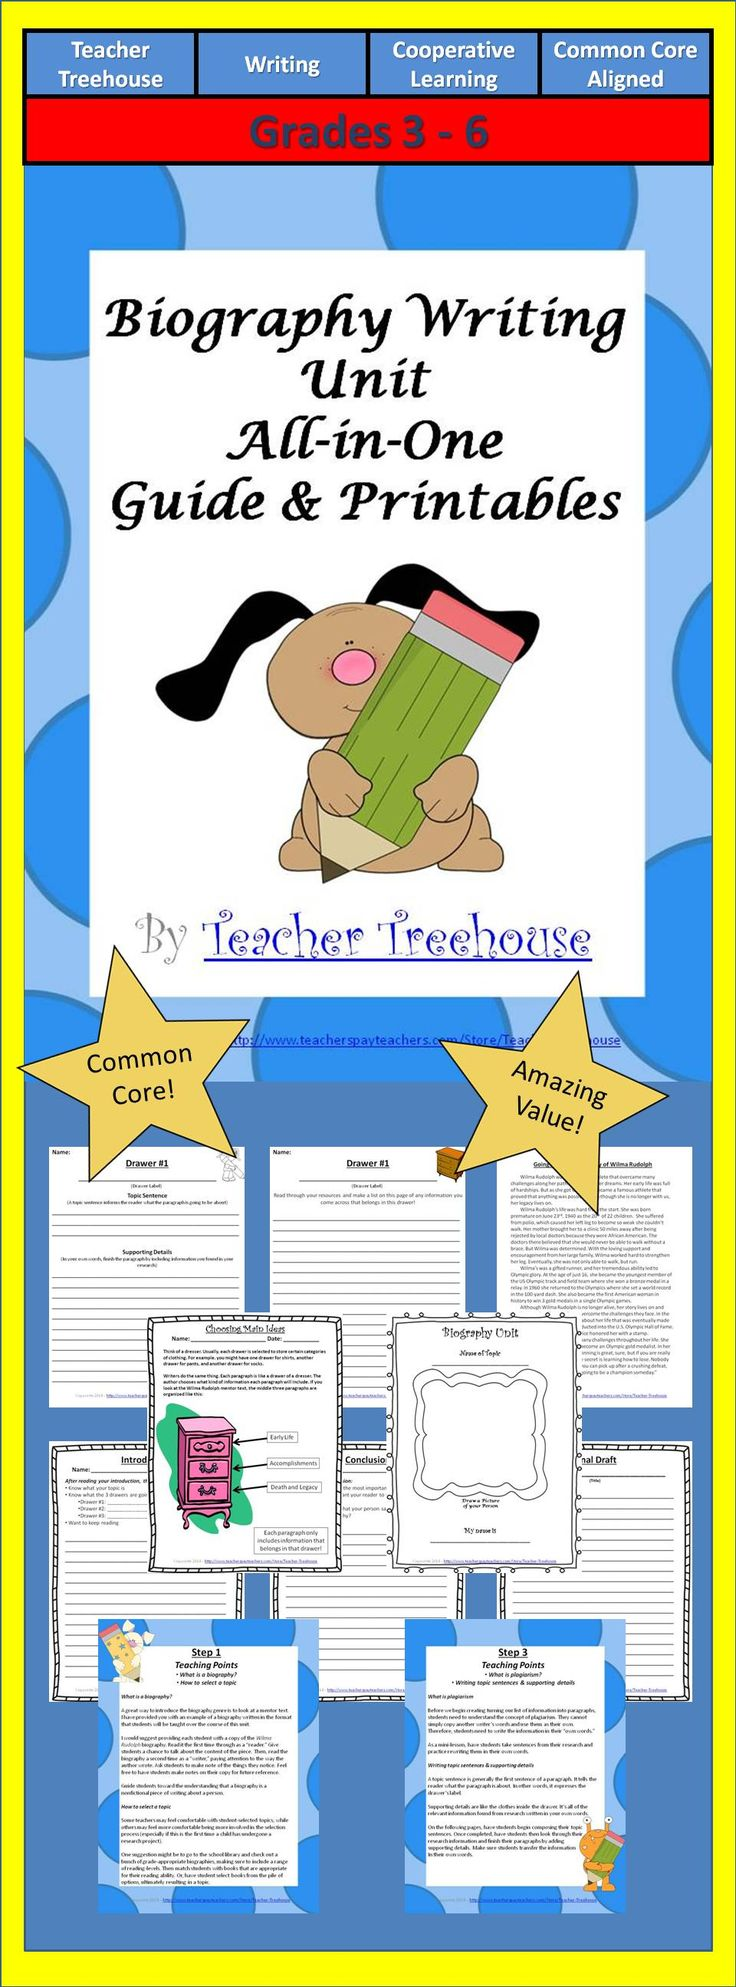 This product provides you with both a step-by-step guide and all accompanying printables to teach your students how to write biographies. Each step of the process I provide you with key teaching points and the printable materials specifically designed to guide your students through the process.   Your students will learn: - What a biography is - How to select a topic - How to find sources - What to look for - Main Ideas, Topic Sentences & Supporting Details - Etc.